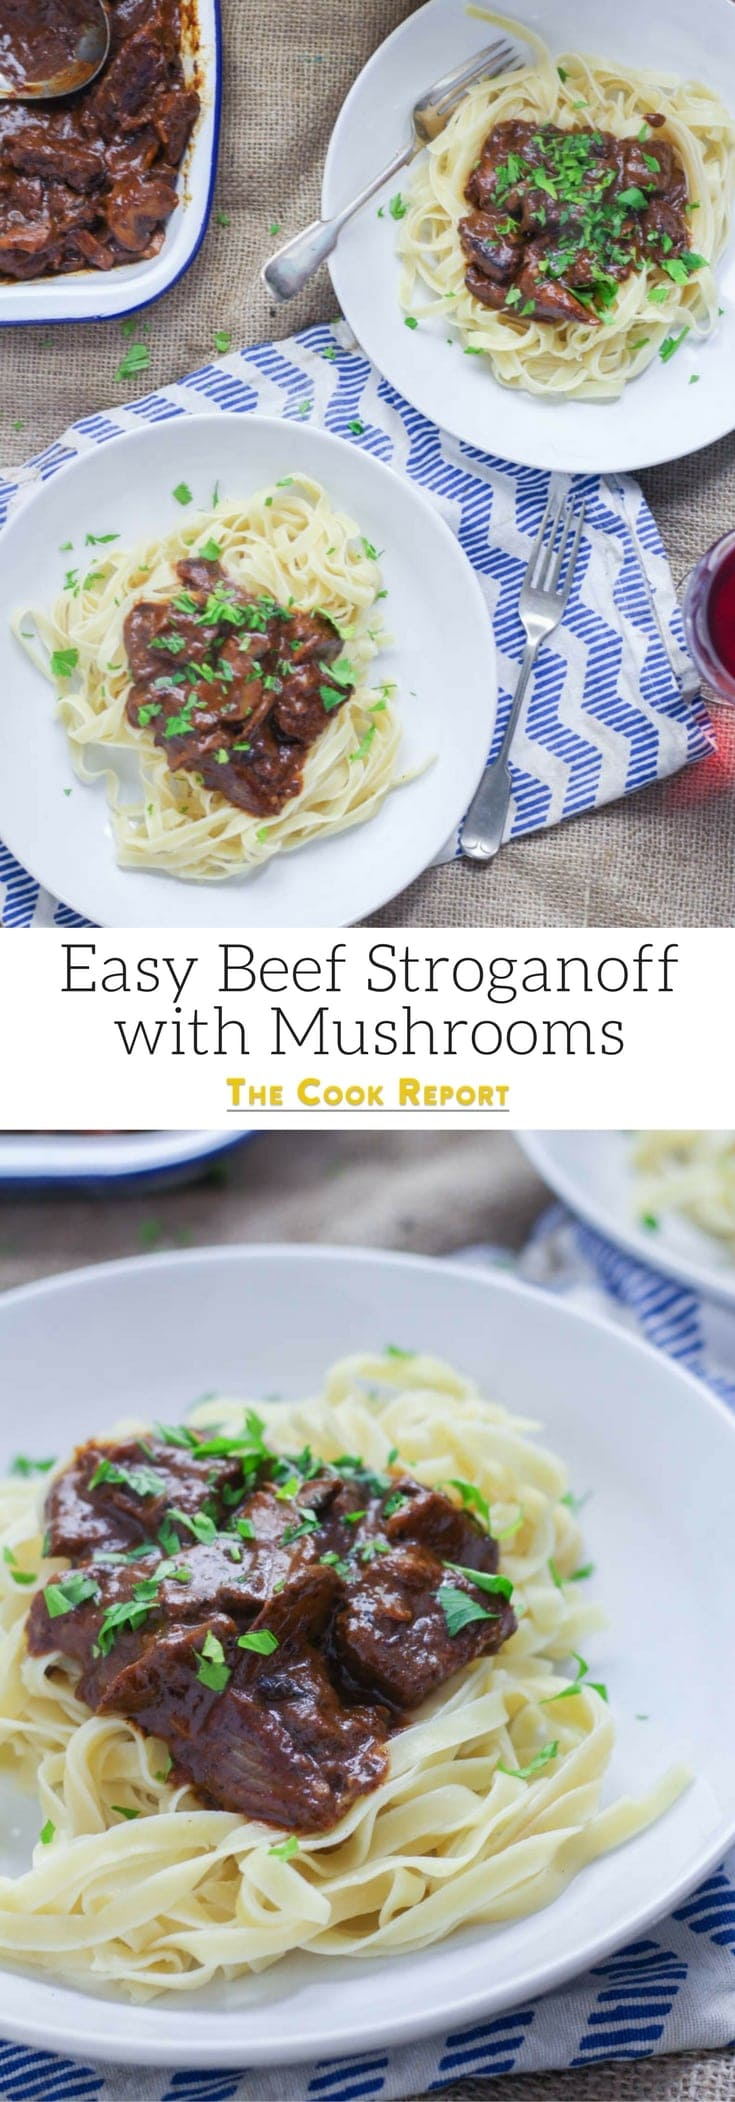 Easy Beef Stroganoff with Mushrooms. Make this easy beef stroganoff for a warming winter dinner. There's really nothing better than tender beef cooked with red wine and vegetables. #beefstroganoff #recipe #beef